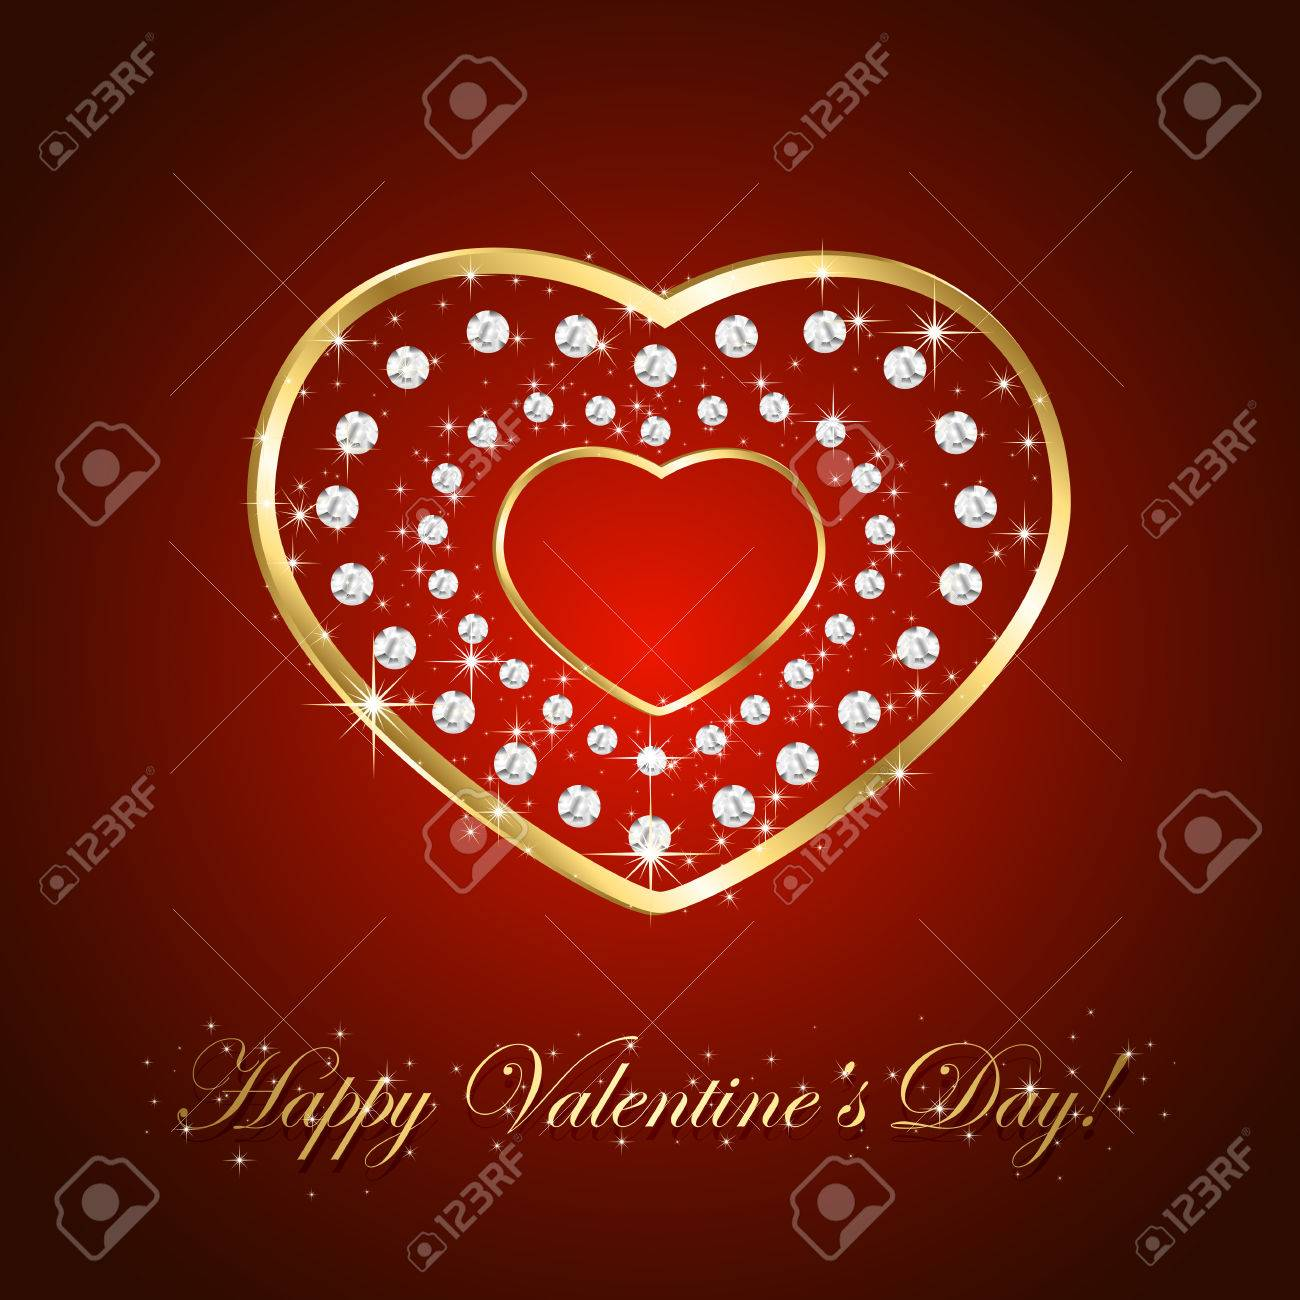 red background with shiny golden hearts and diamonds illustration